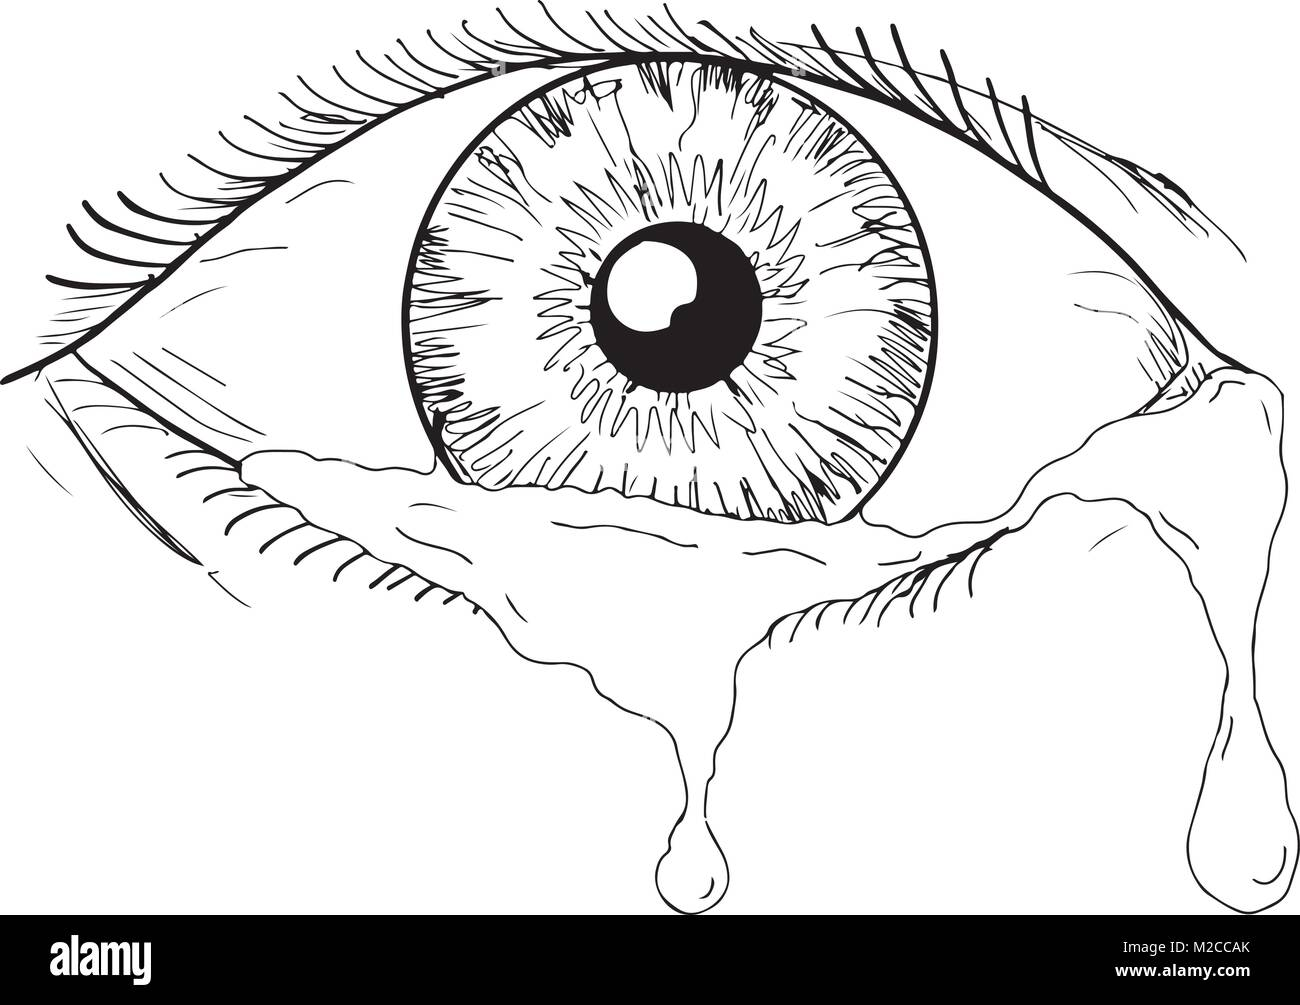 Drawing sketch style illustration of a human eye crying - Style de dessin ...